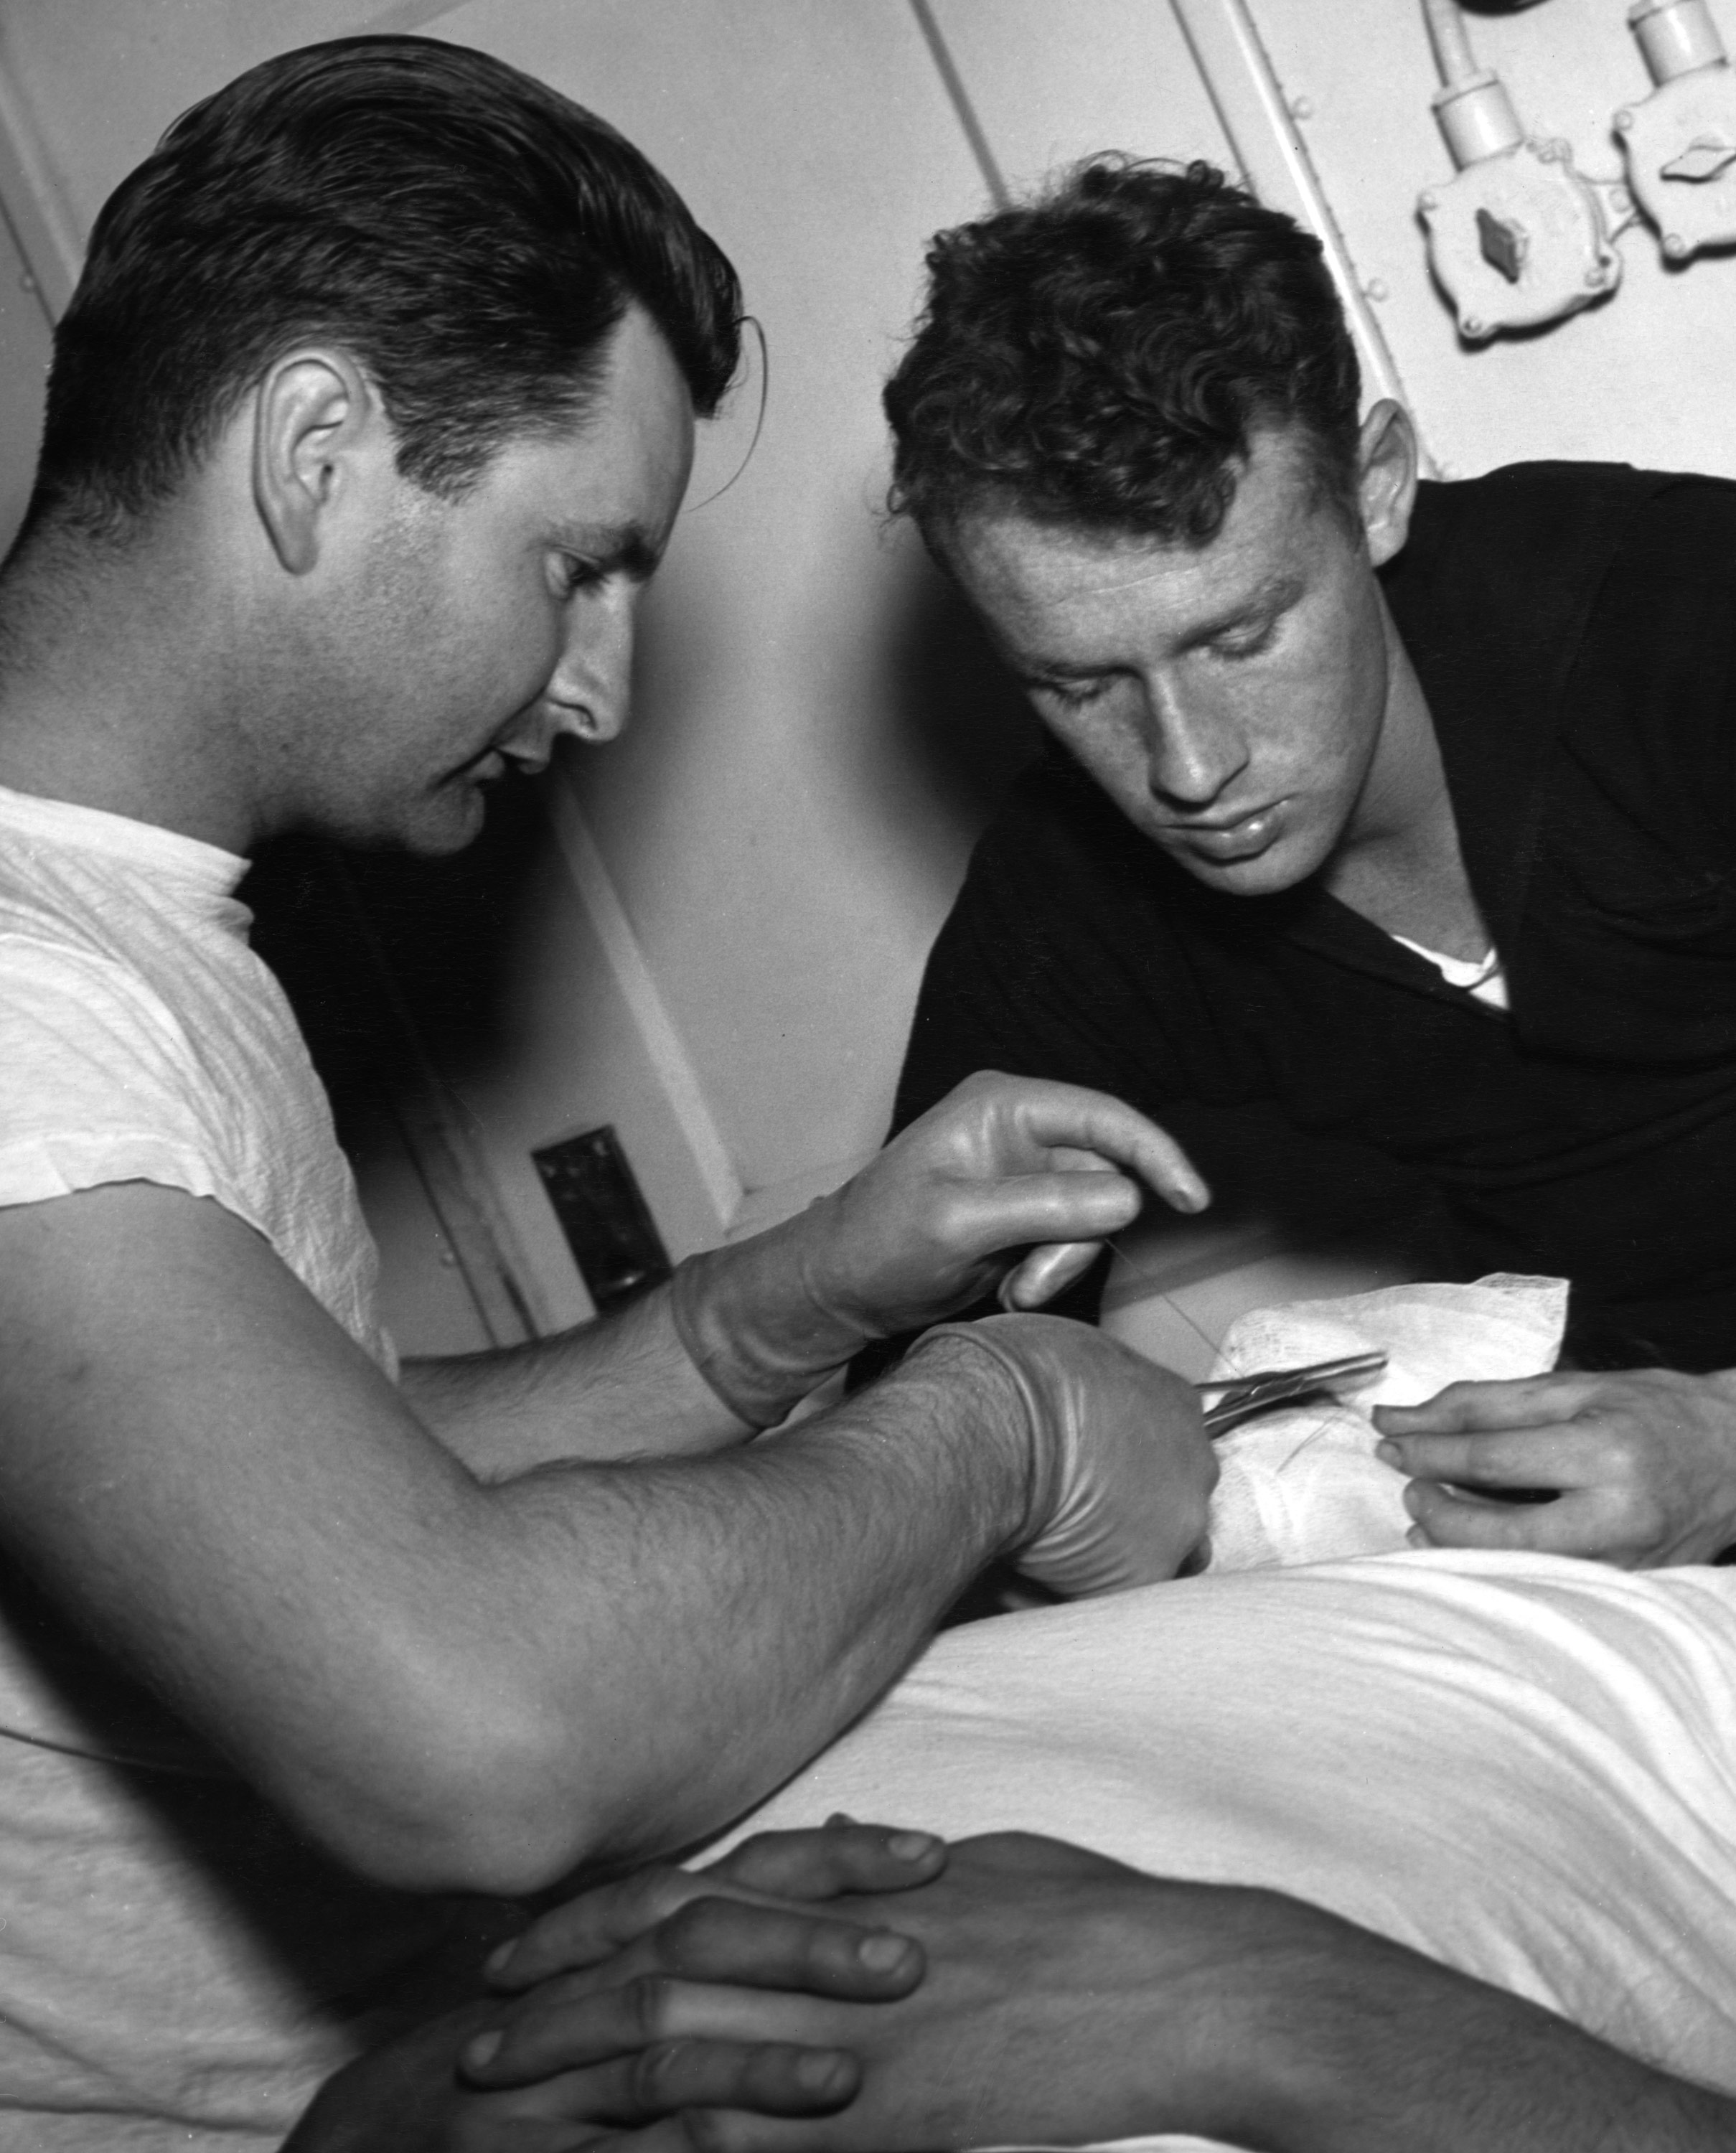 1945 - Minor Surgery Performed by Ph. M Baker and Ph. M. Schaefer